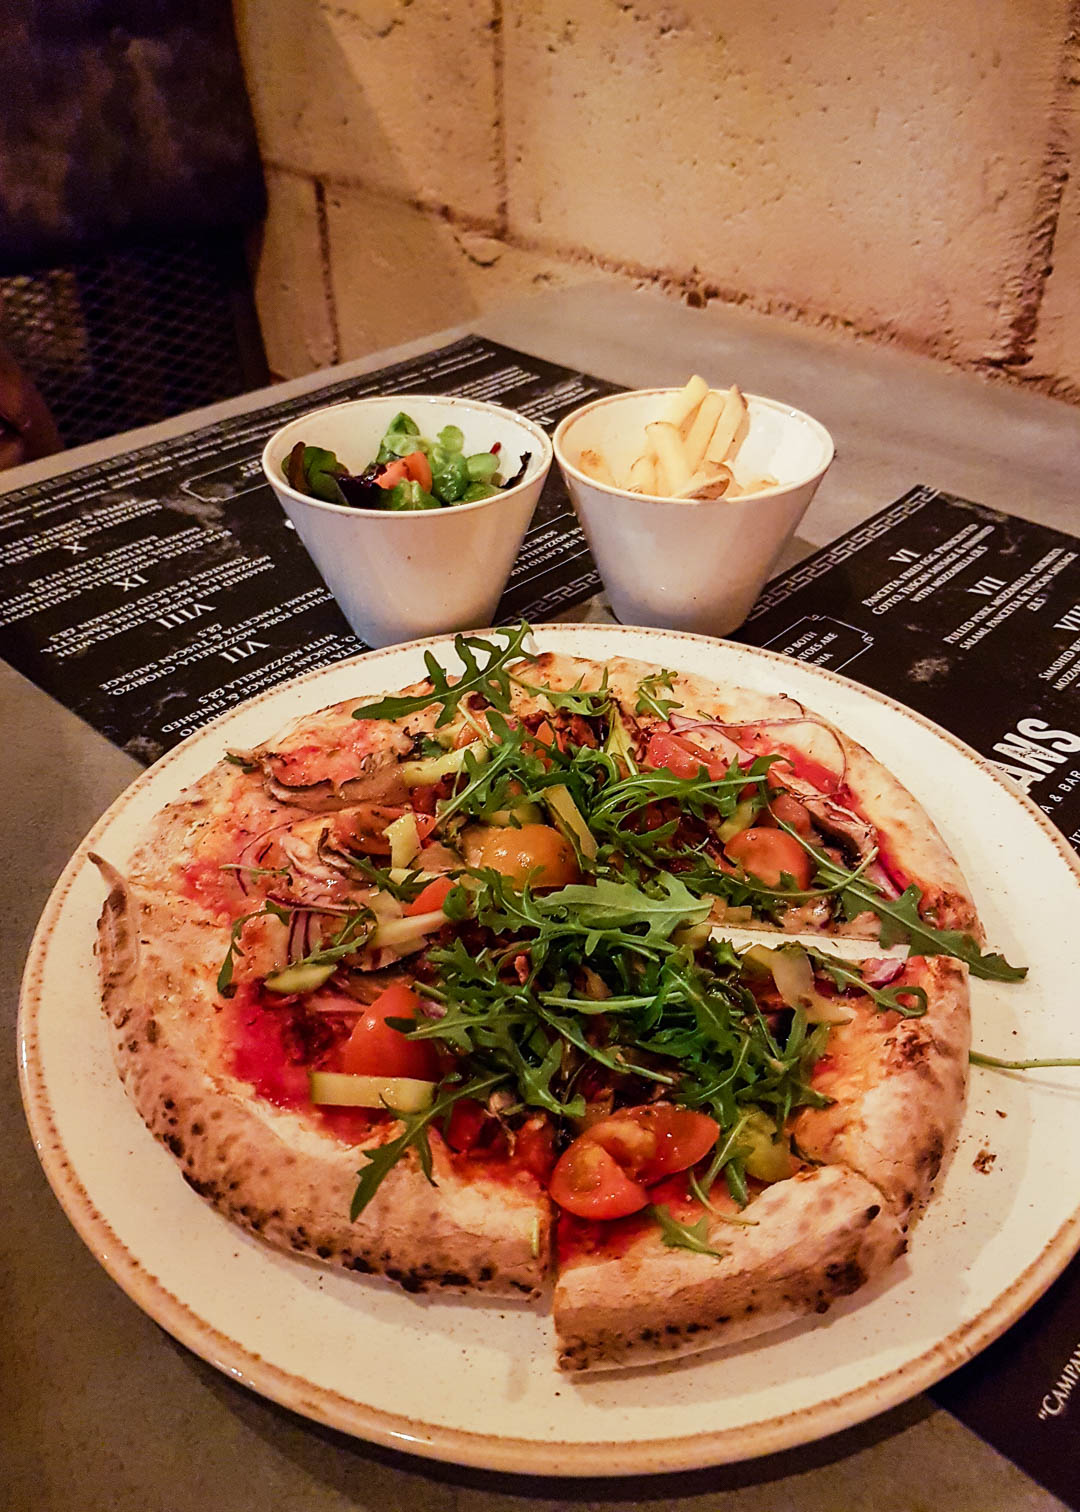 Pizza number 5 with smoked vegan chicken, mushrooms, rocket and cherry tomatoes at the new vegan-friendly restaurant Romans Pizzeria Glasgow.